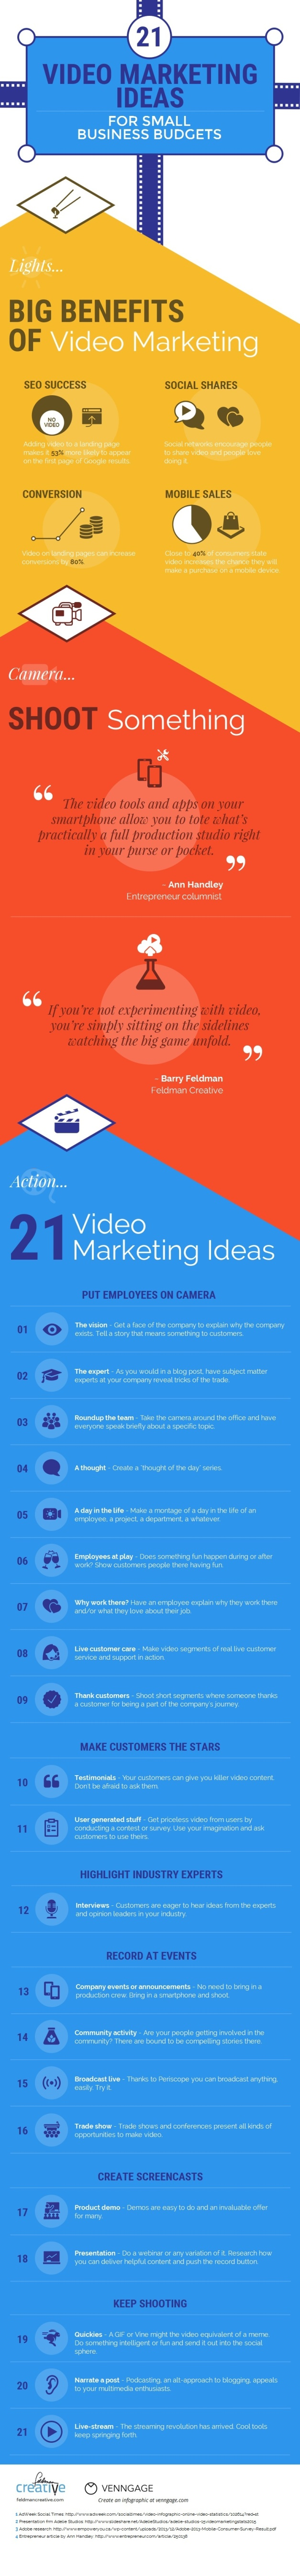 video-marketing-ideas-for-small-budgets-infographic